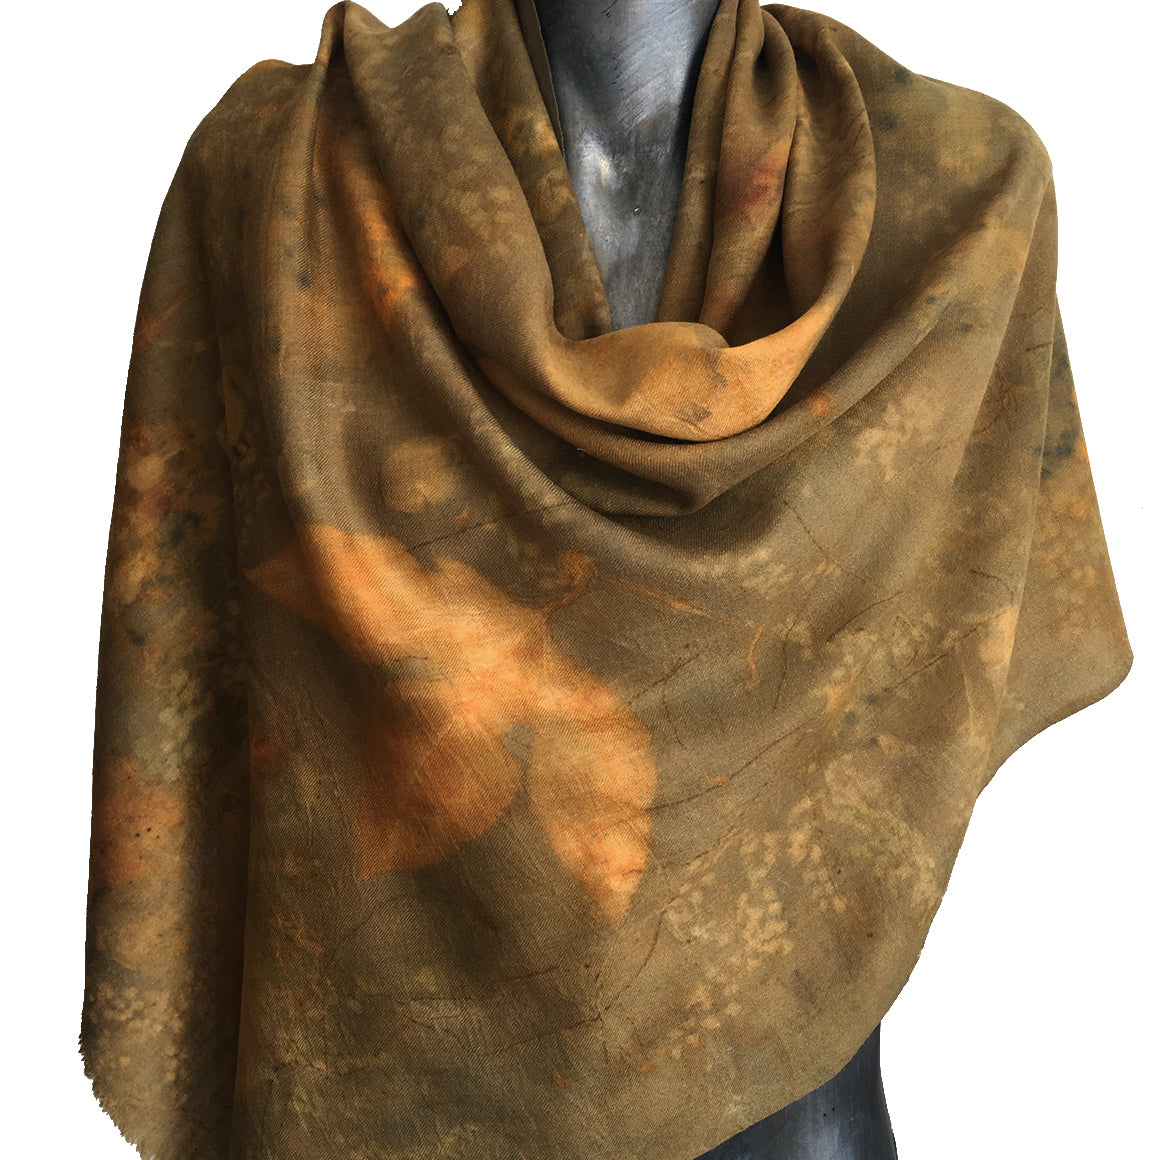 Merino wool/Silk SHAWL by Yaja Hadrys